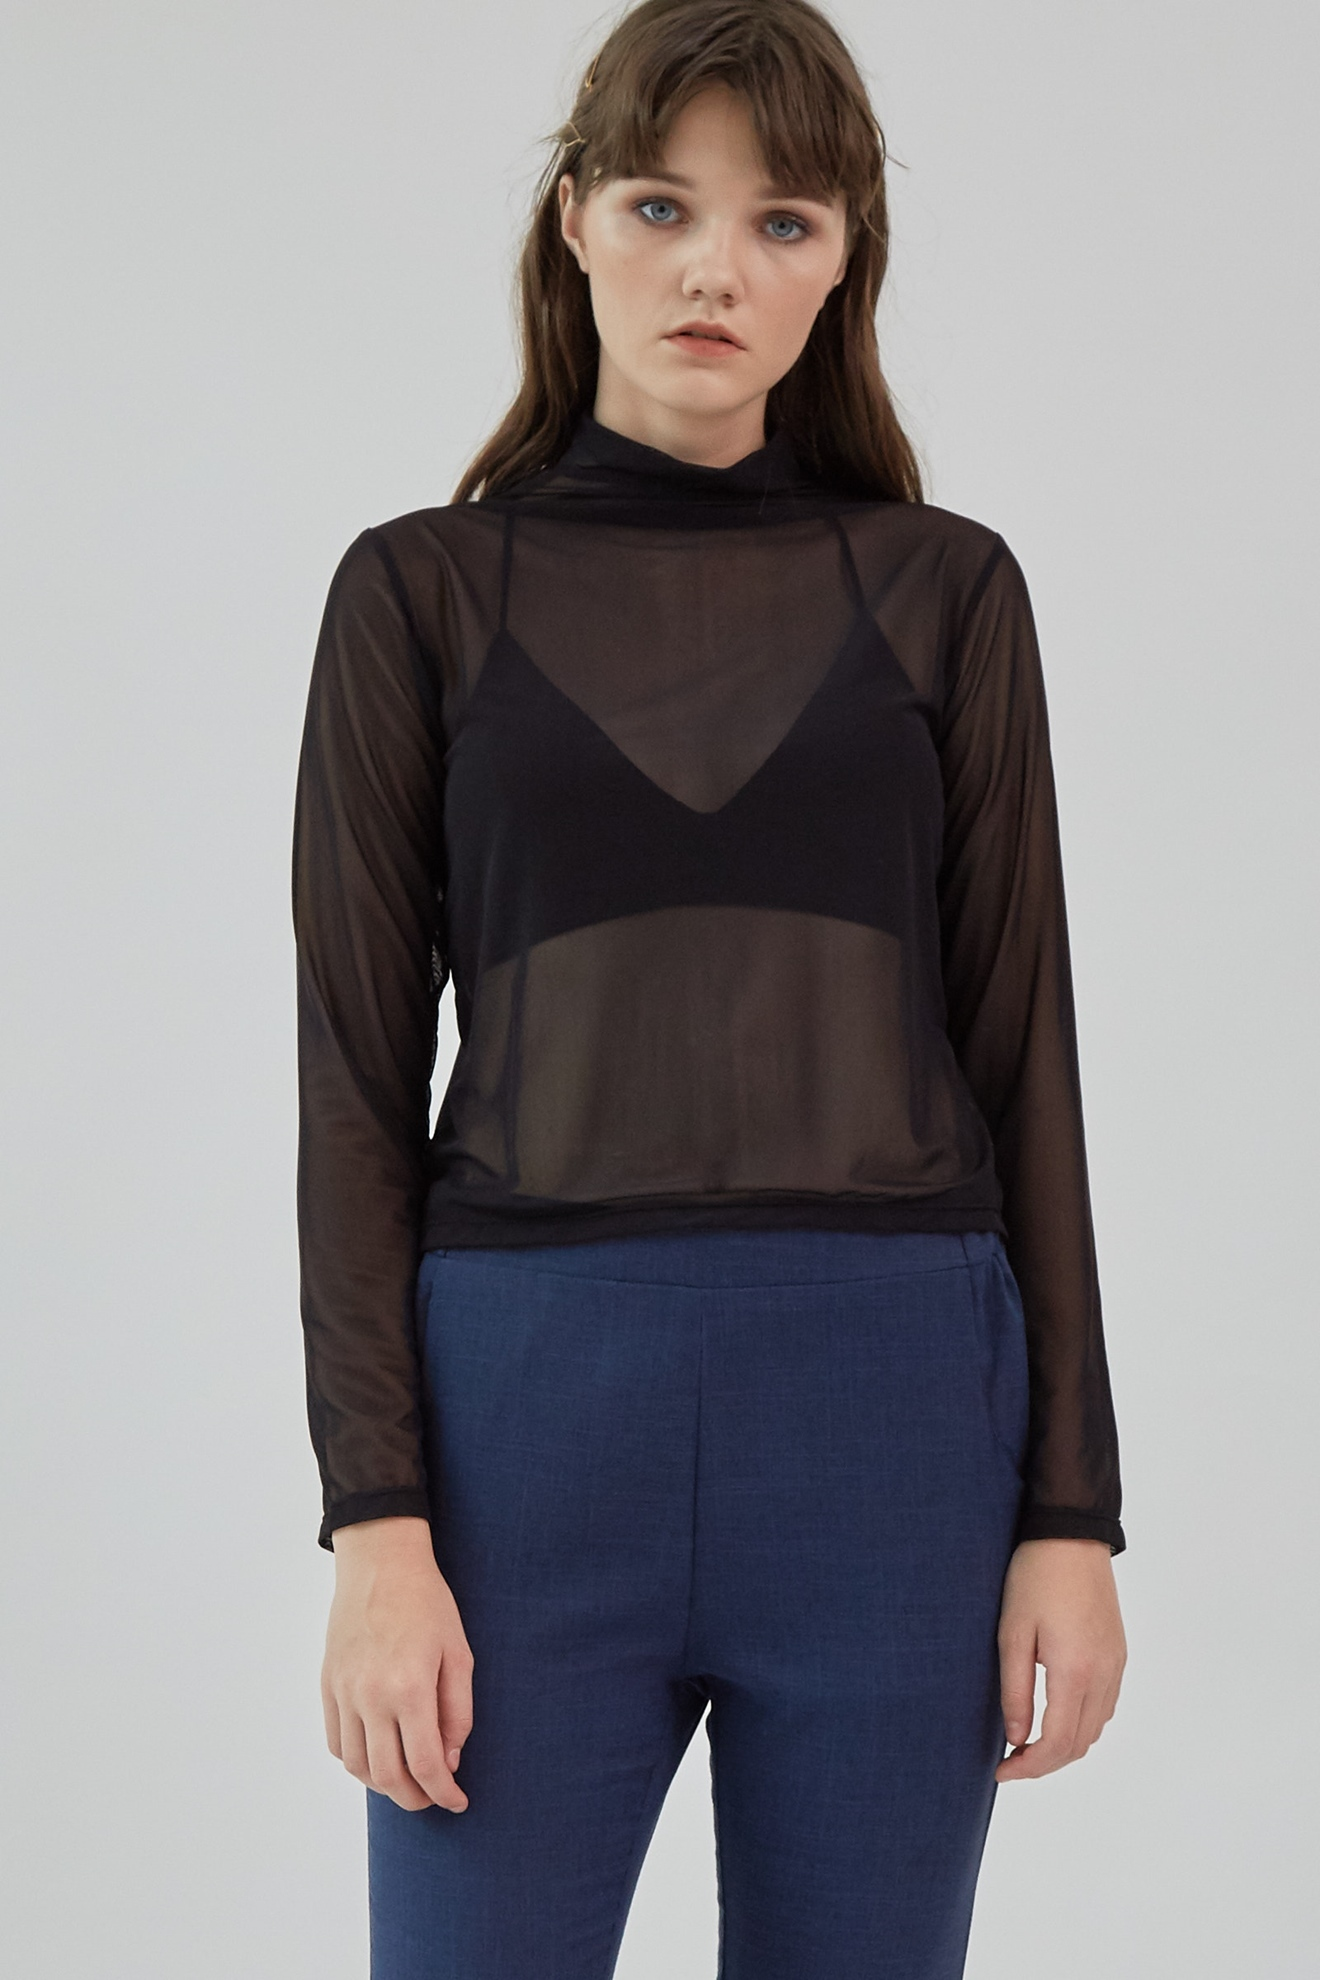 Picture of Monic Mesh Top Black